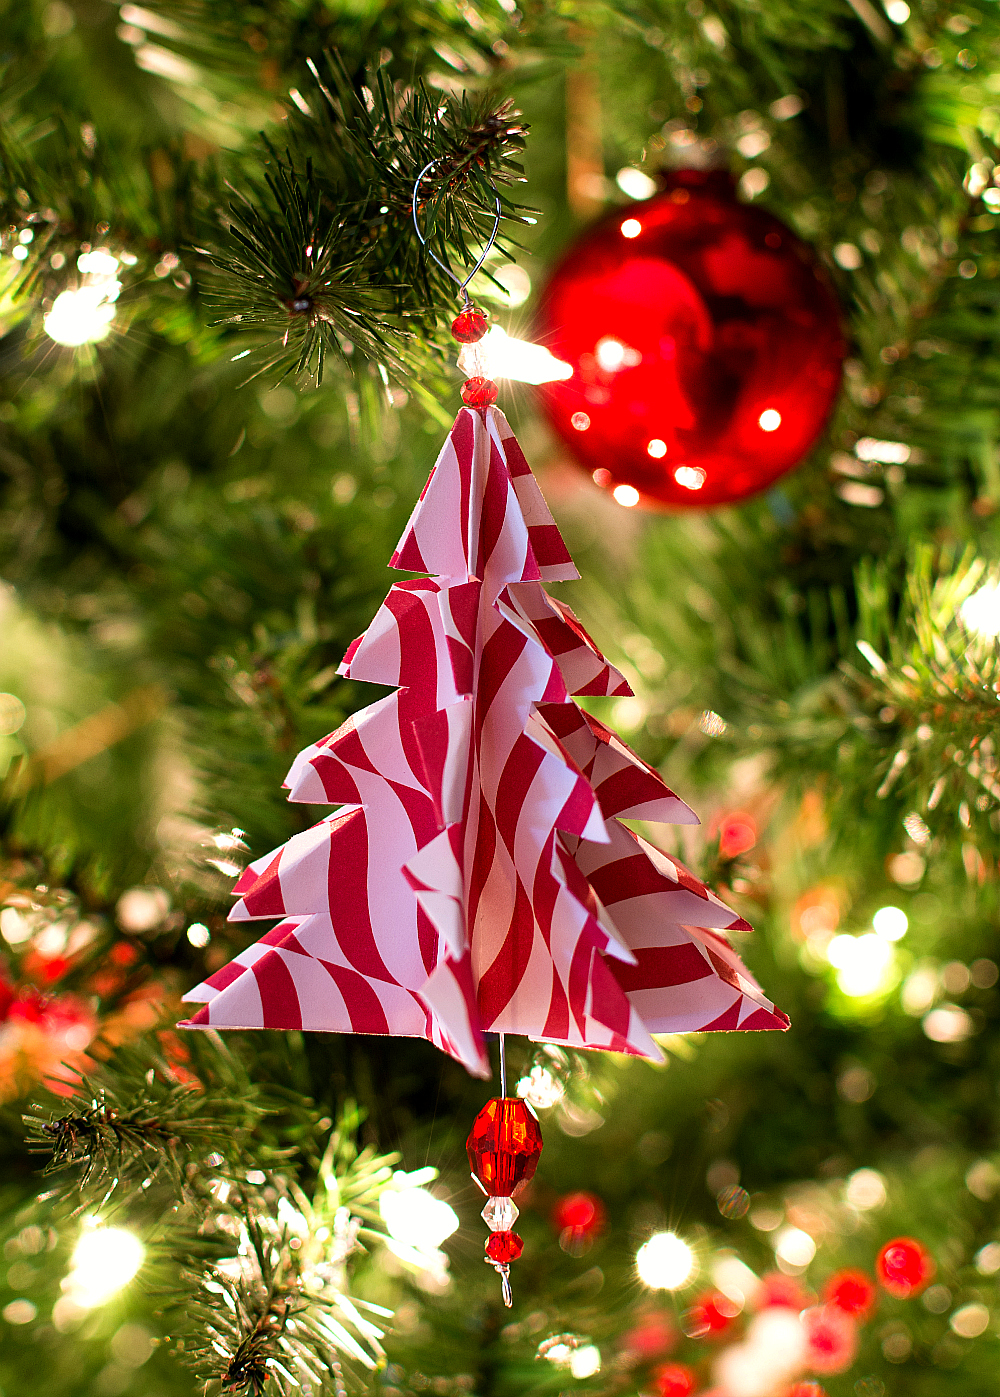 christmas craft ideas handmade ornament with paper origami tree - Handmade Paper Christmas Decorations